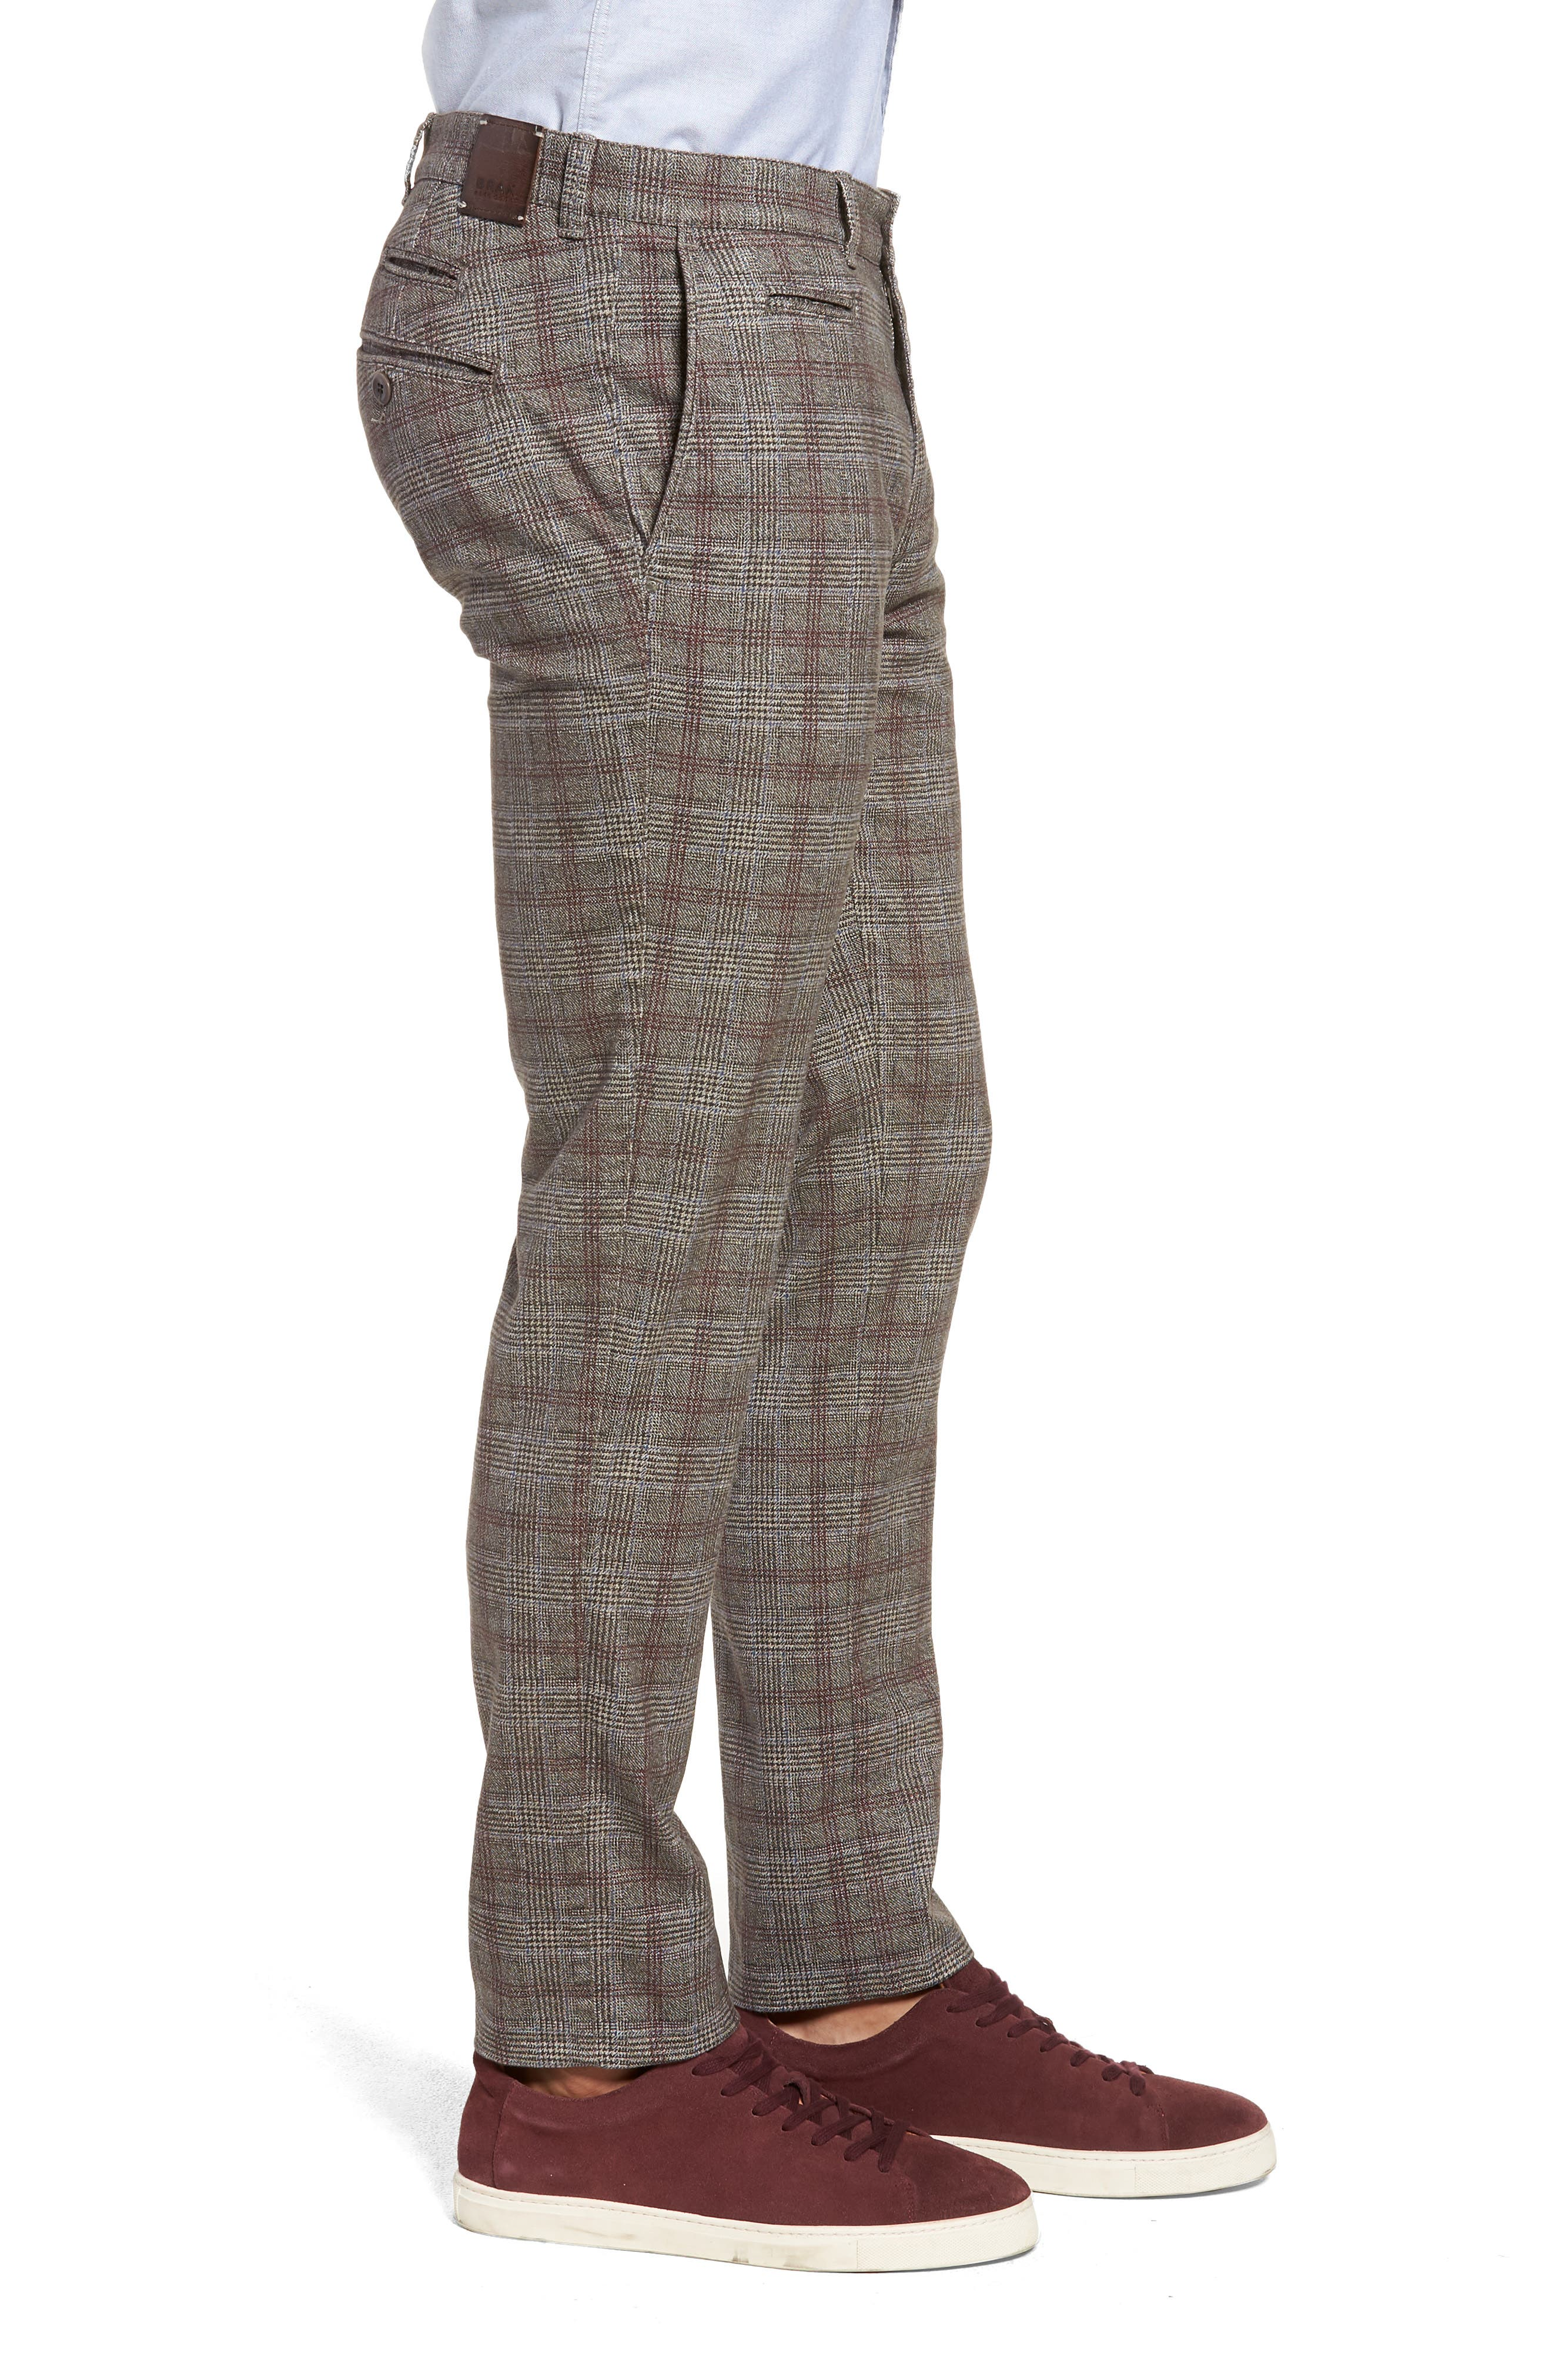 Woolook Slim Fit Check Flat Front Pants,                             Alternate thumbnail 3, color,                             BEIGE